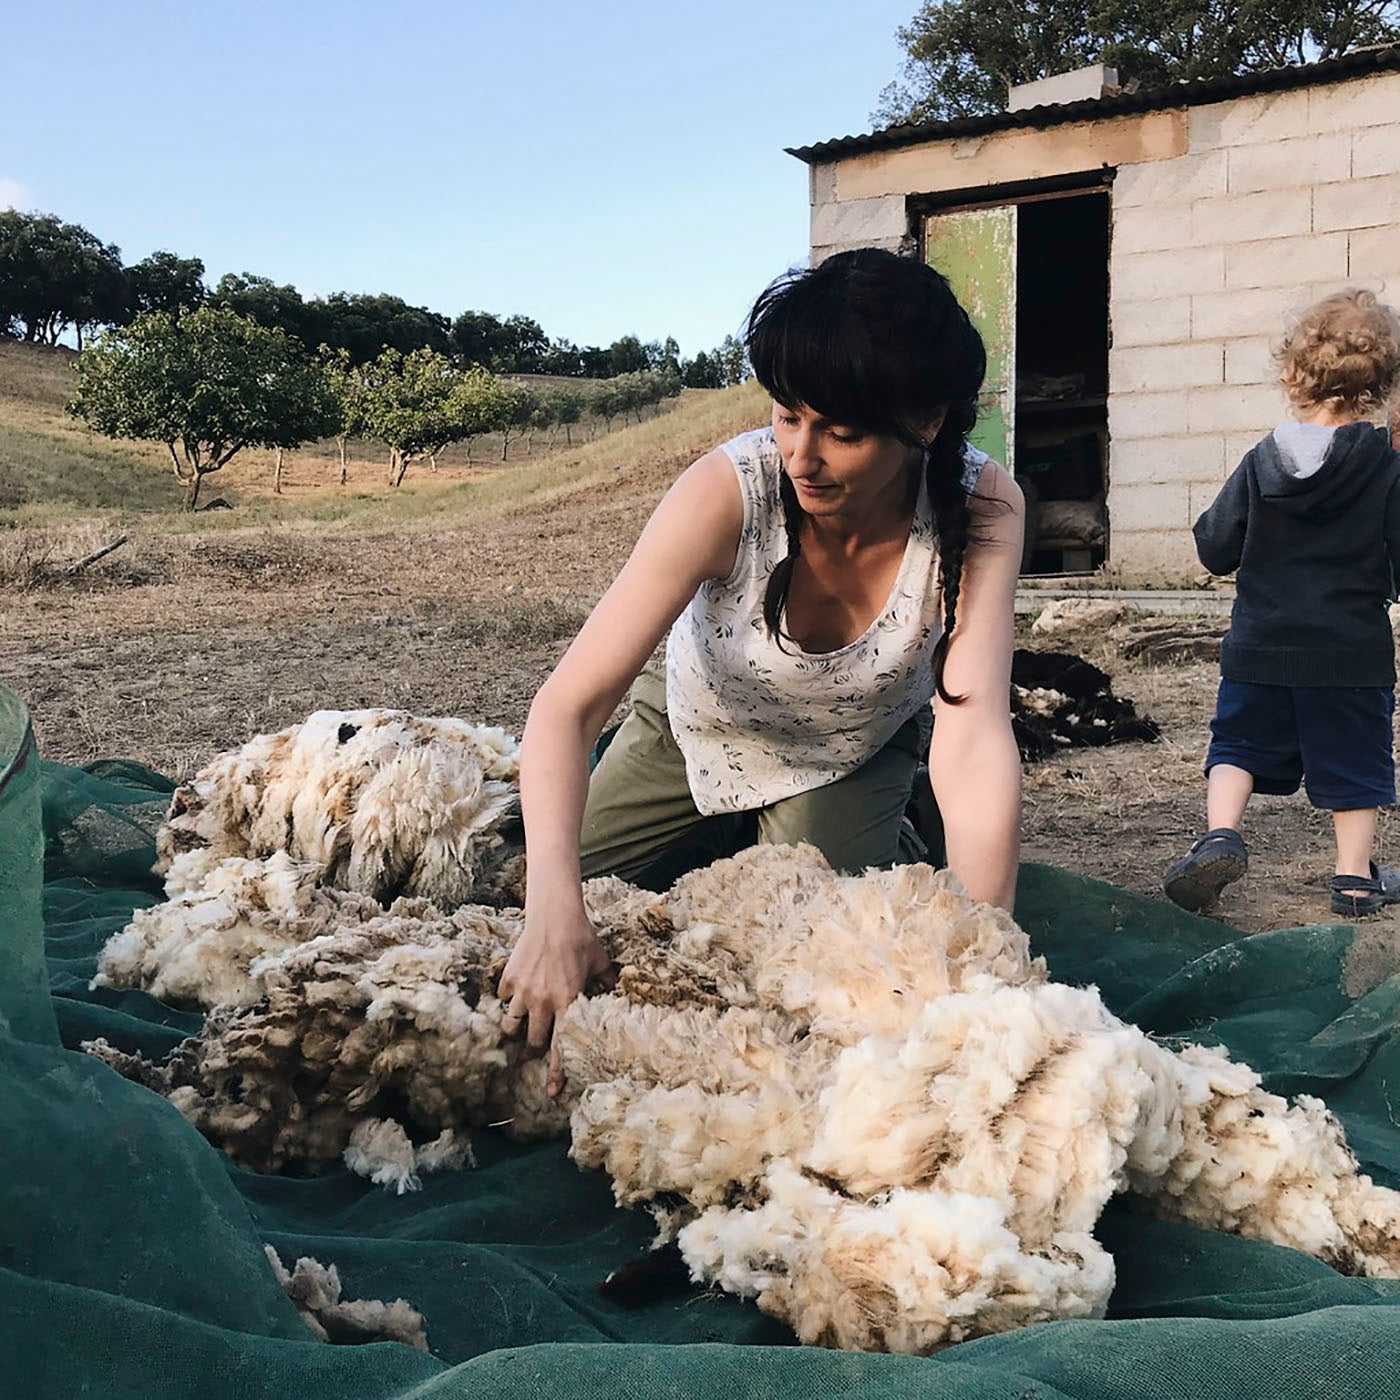 Rosa sorting freshly shorn fleece for yarn